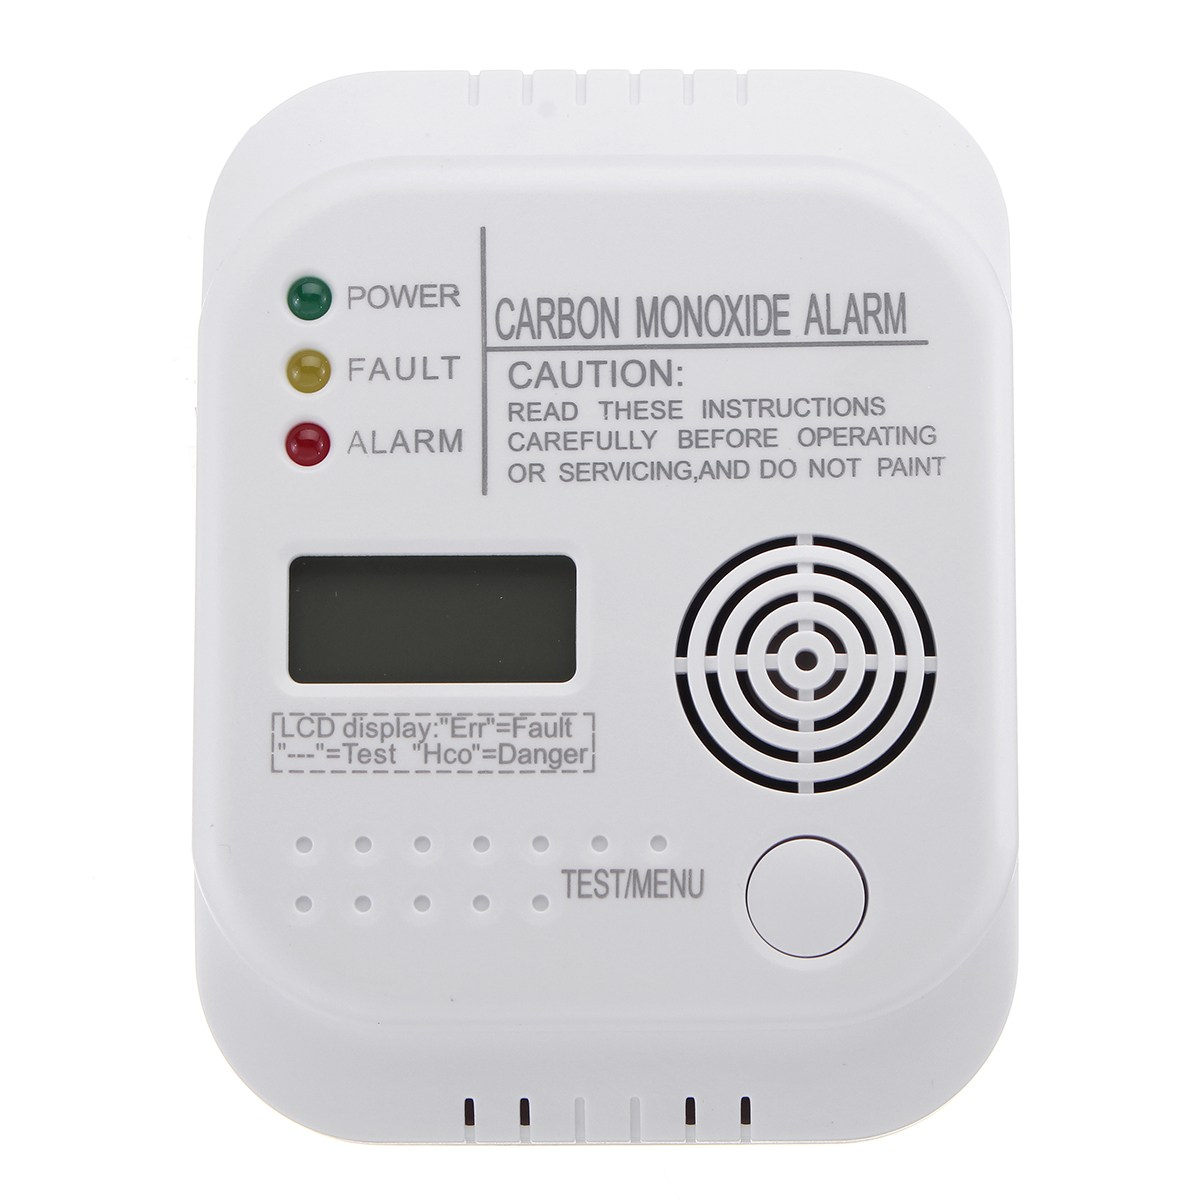 NEW CO Carbon Monoxide Alarm Detector LCD Digital Home Security Indepedent Sensor Safety(China)